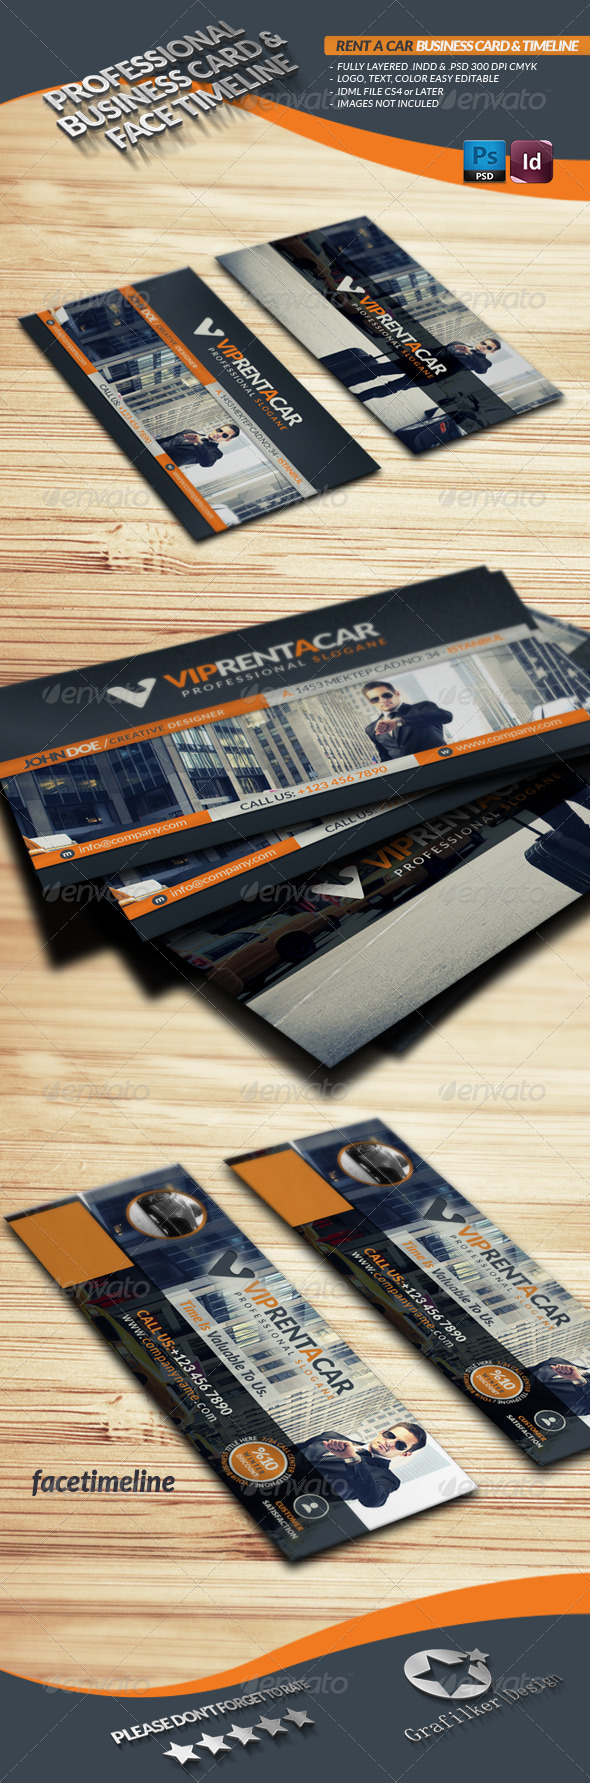 Rent a car business card face timeline by grafilker graphicriver rent a car business card face timeline industry specific business cards magicingreecefo Gallery